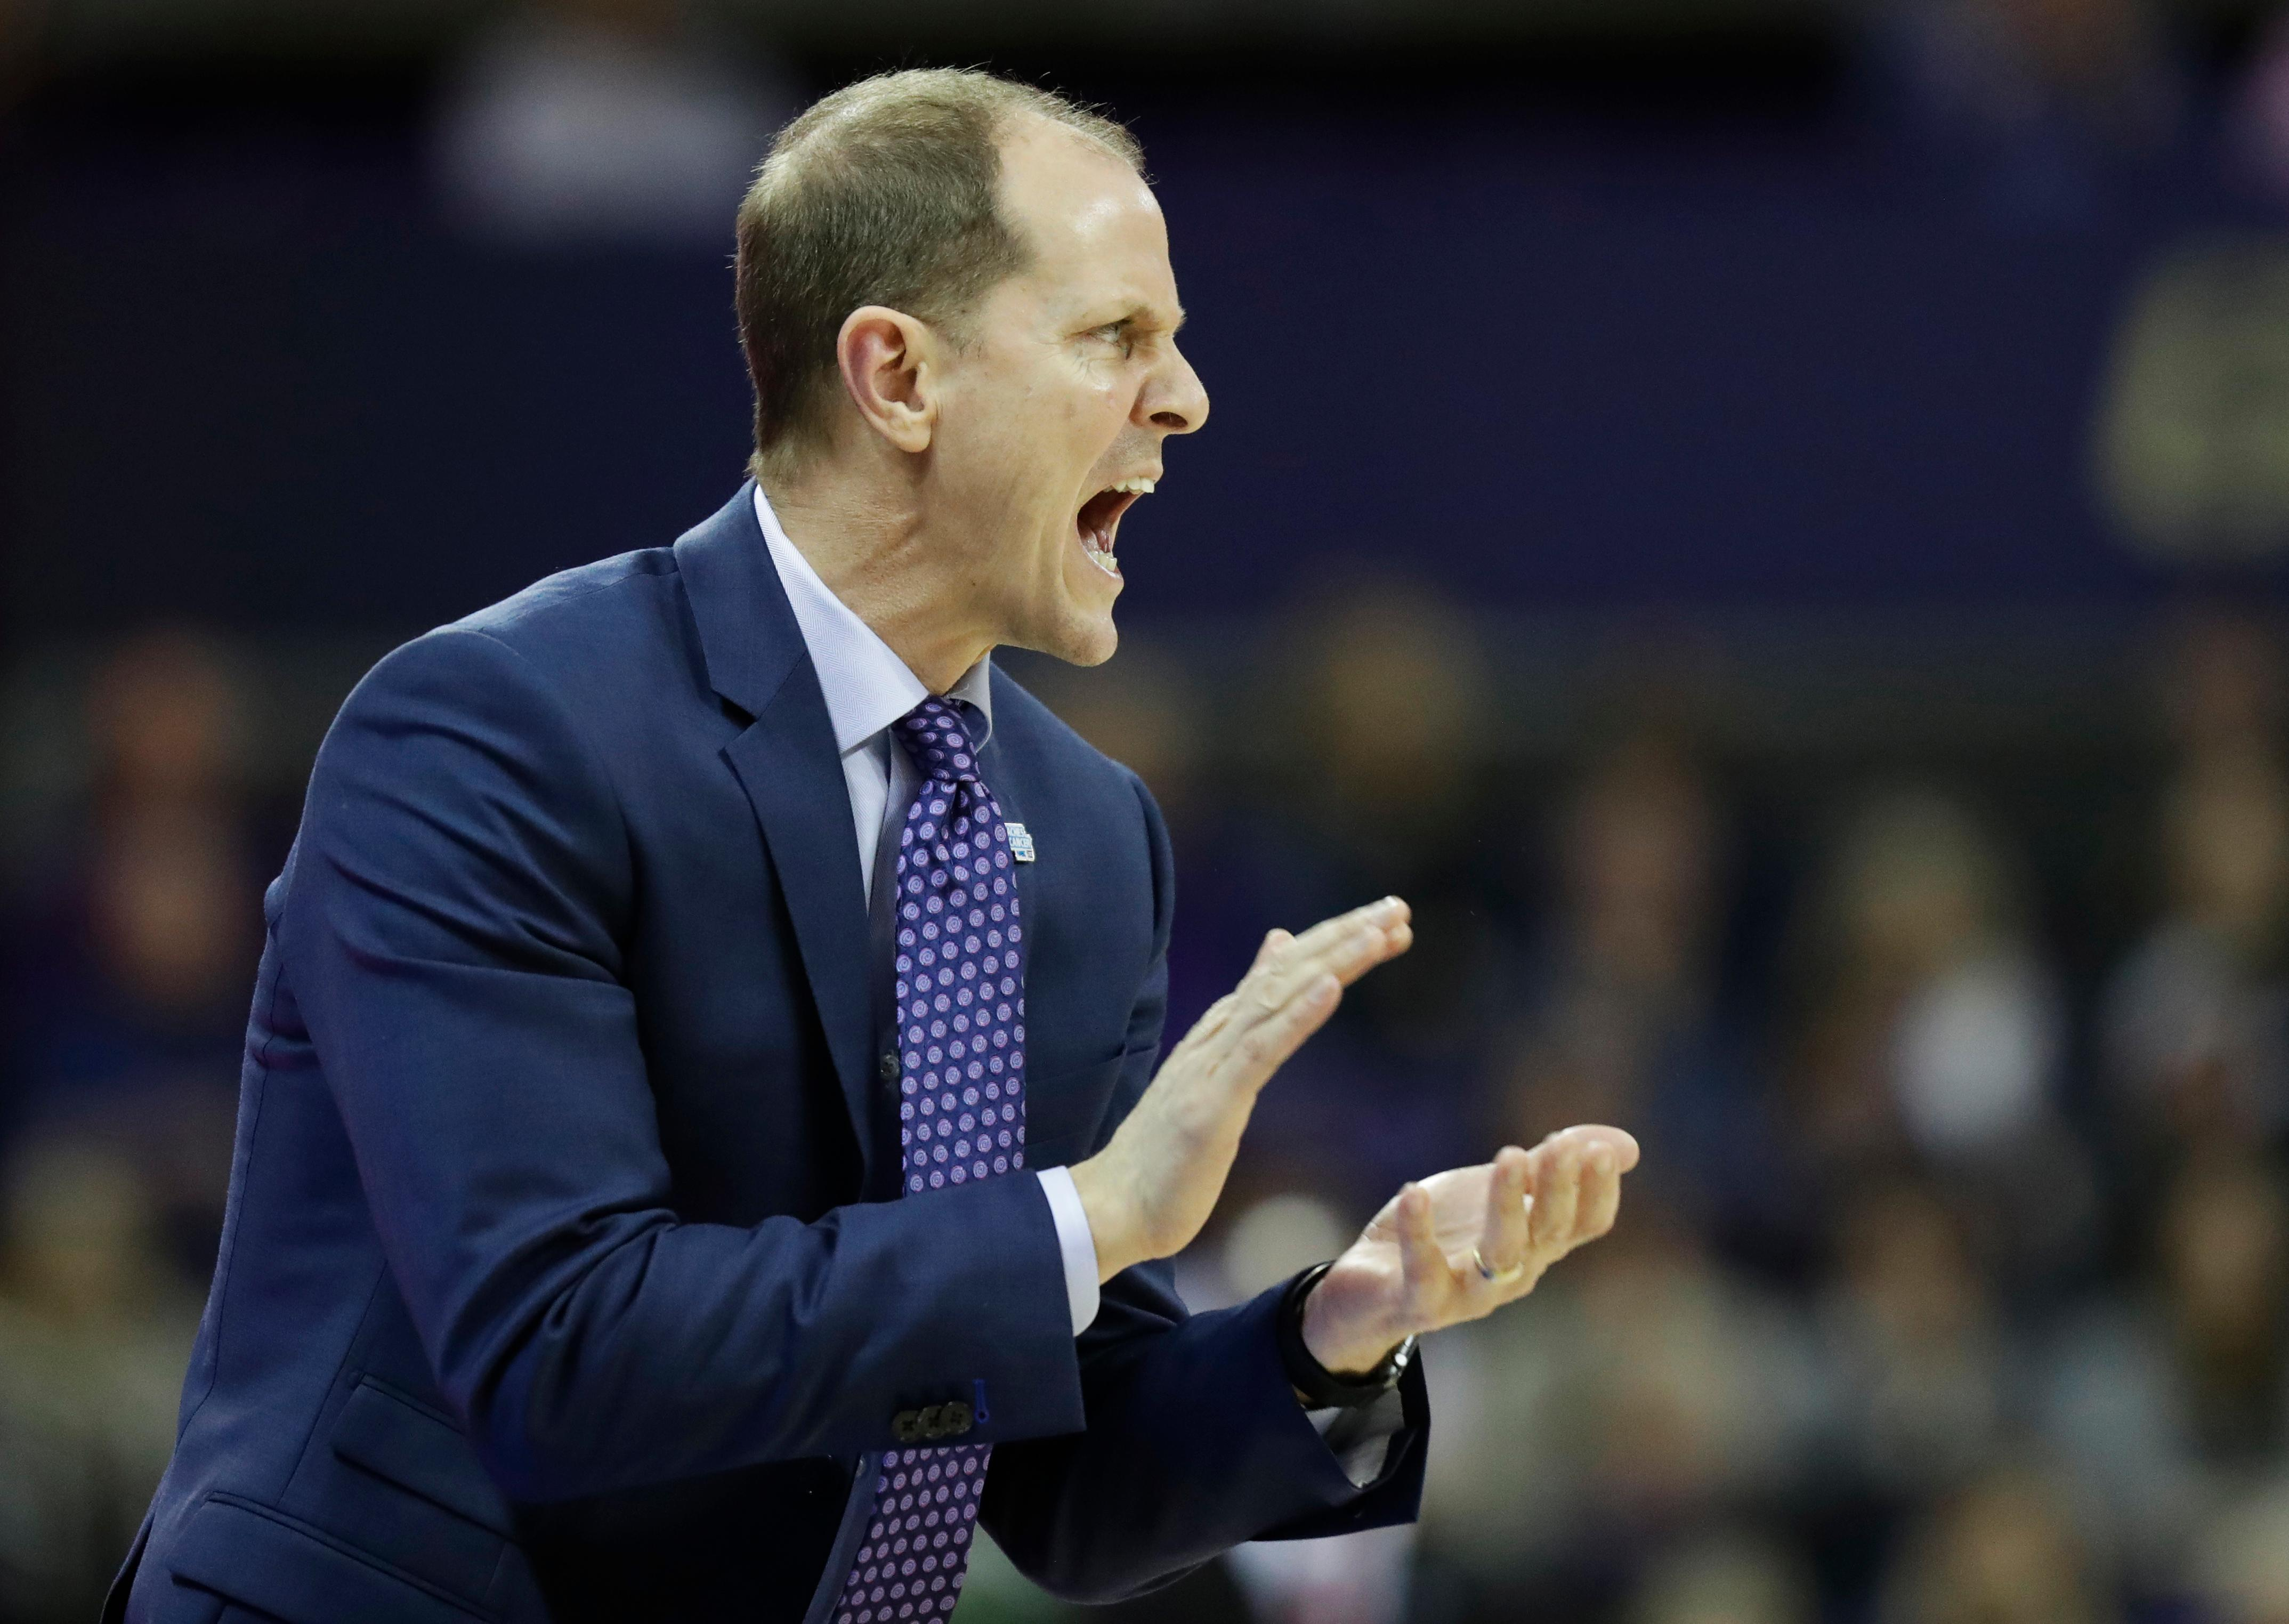 In this Sunday, Jan. 28, 2018 photo, Washington head coach Mike Hopkins calls to his team during the first half of an NCAA college basketball game against Washington State in Seattle. One of the most surprising stories in college basketball is what Hopkins is doing in his first season at Washington and how the Huskies are in the conversation for an NCAA bid entering February. (AP Photo/Ted S. Warren)